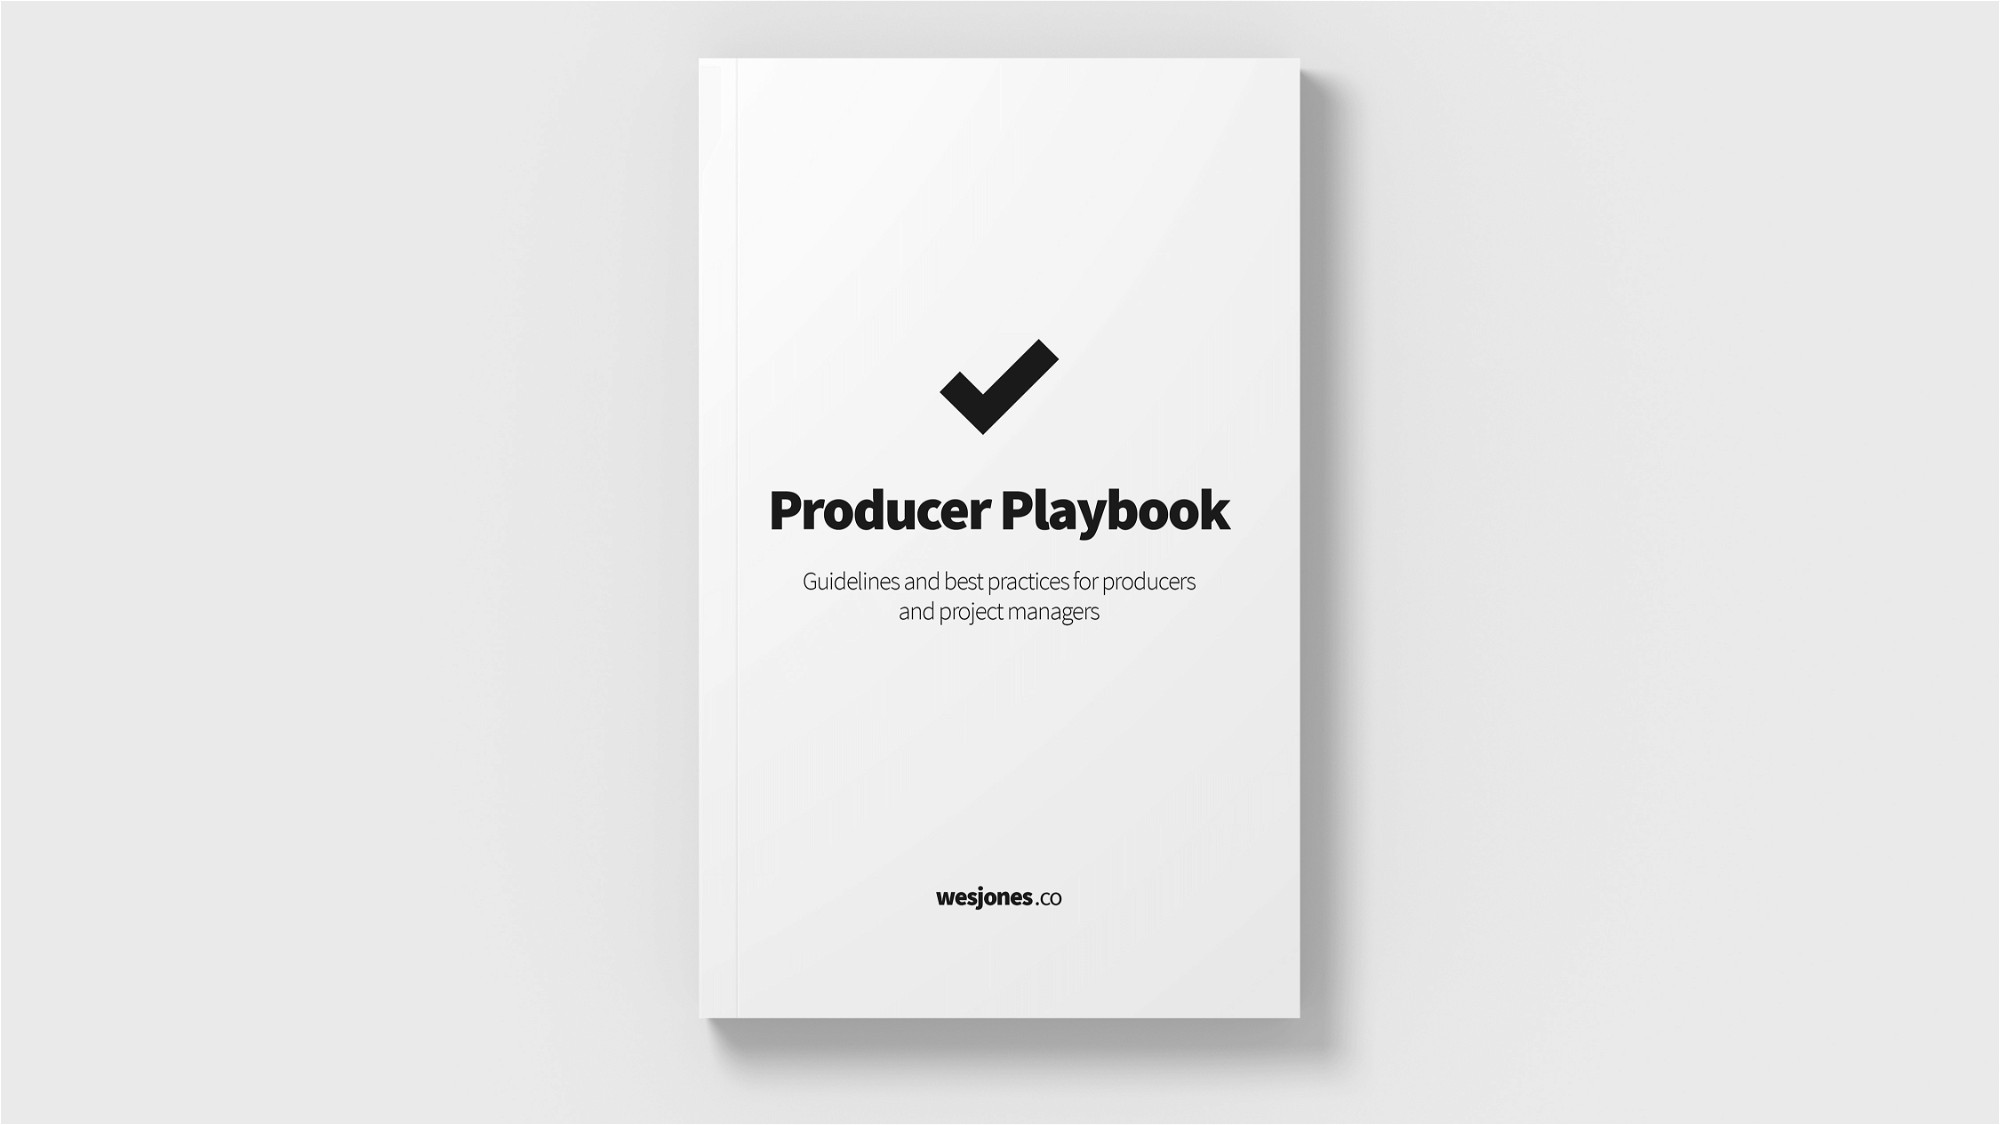 AppSumo Deal for The Producer Playbook